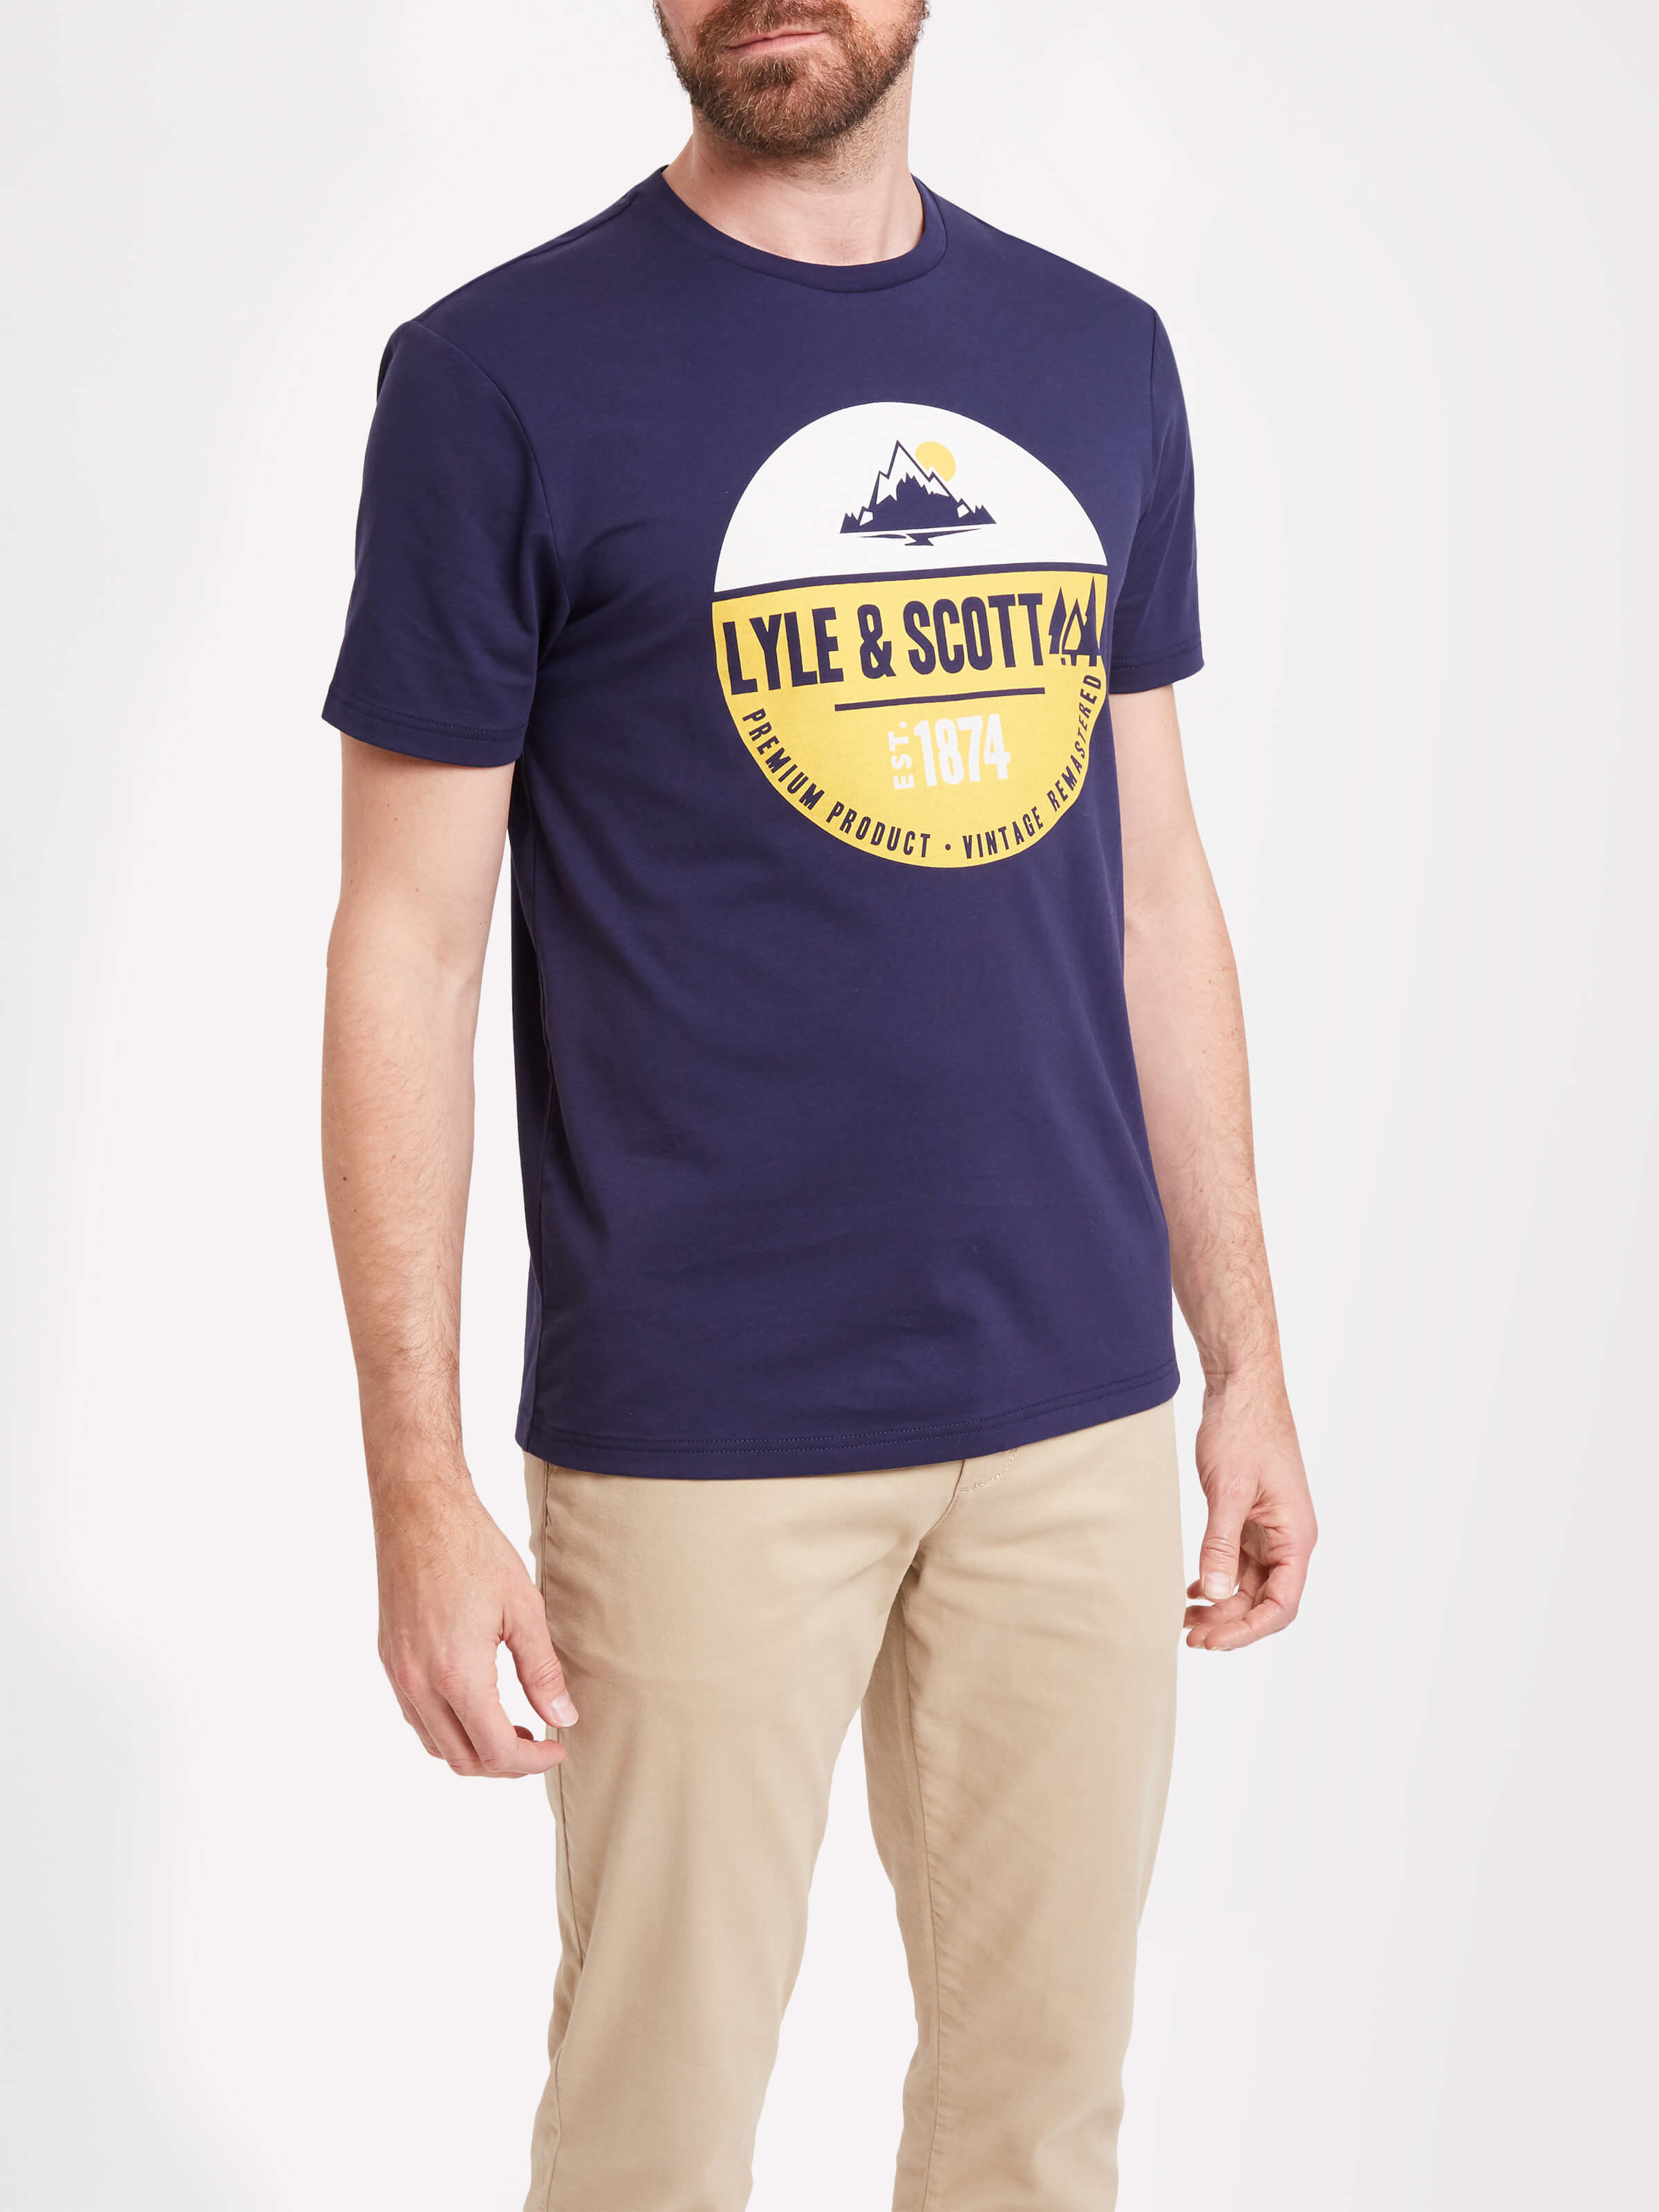 Lyle and Scott Navy Graphic T-Shirt